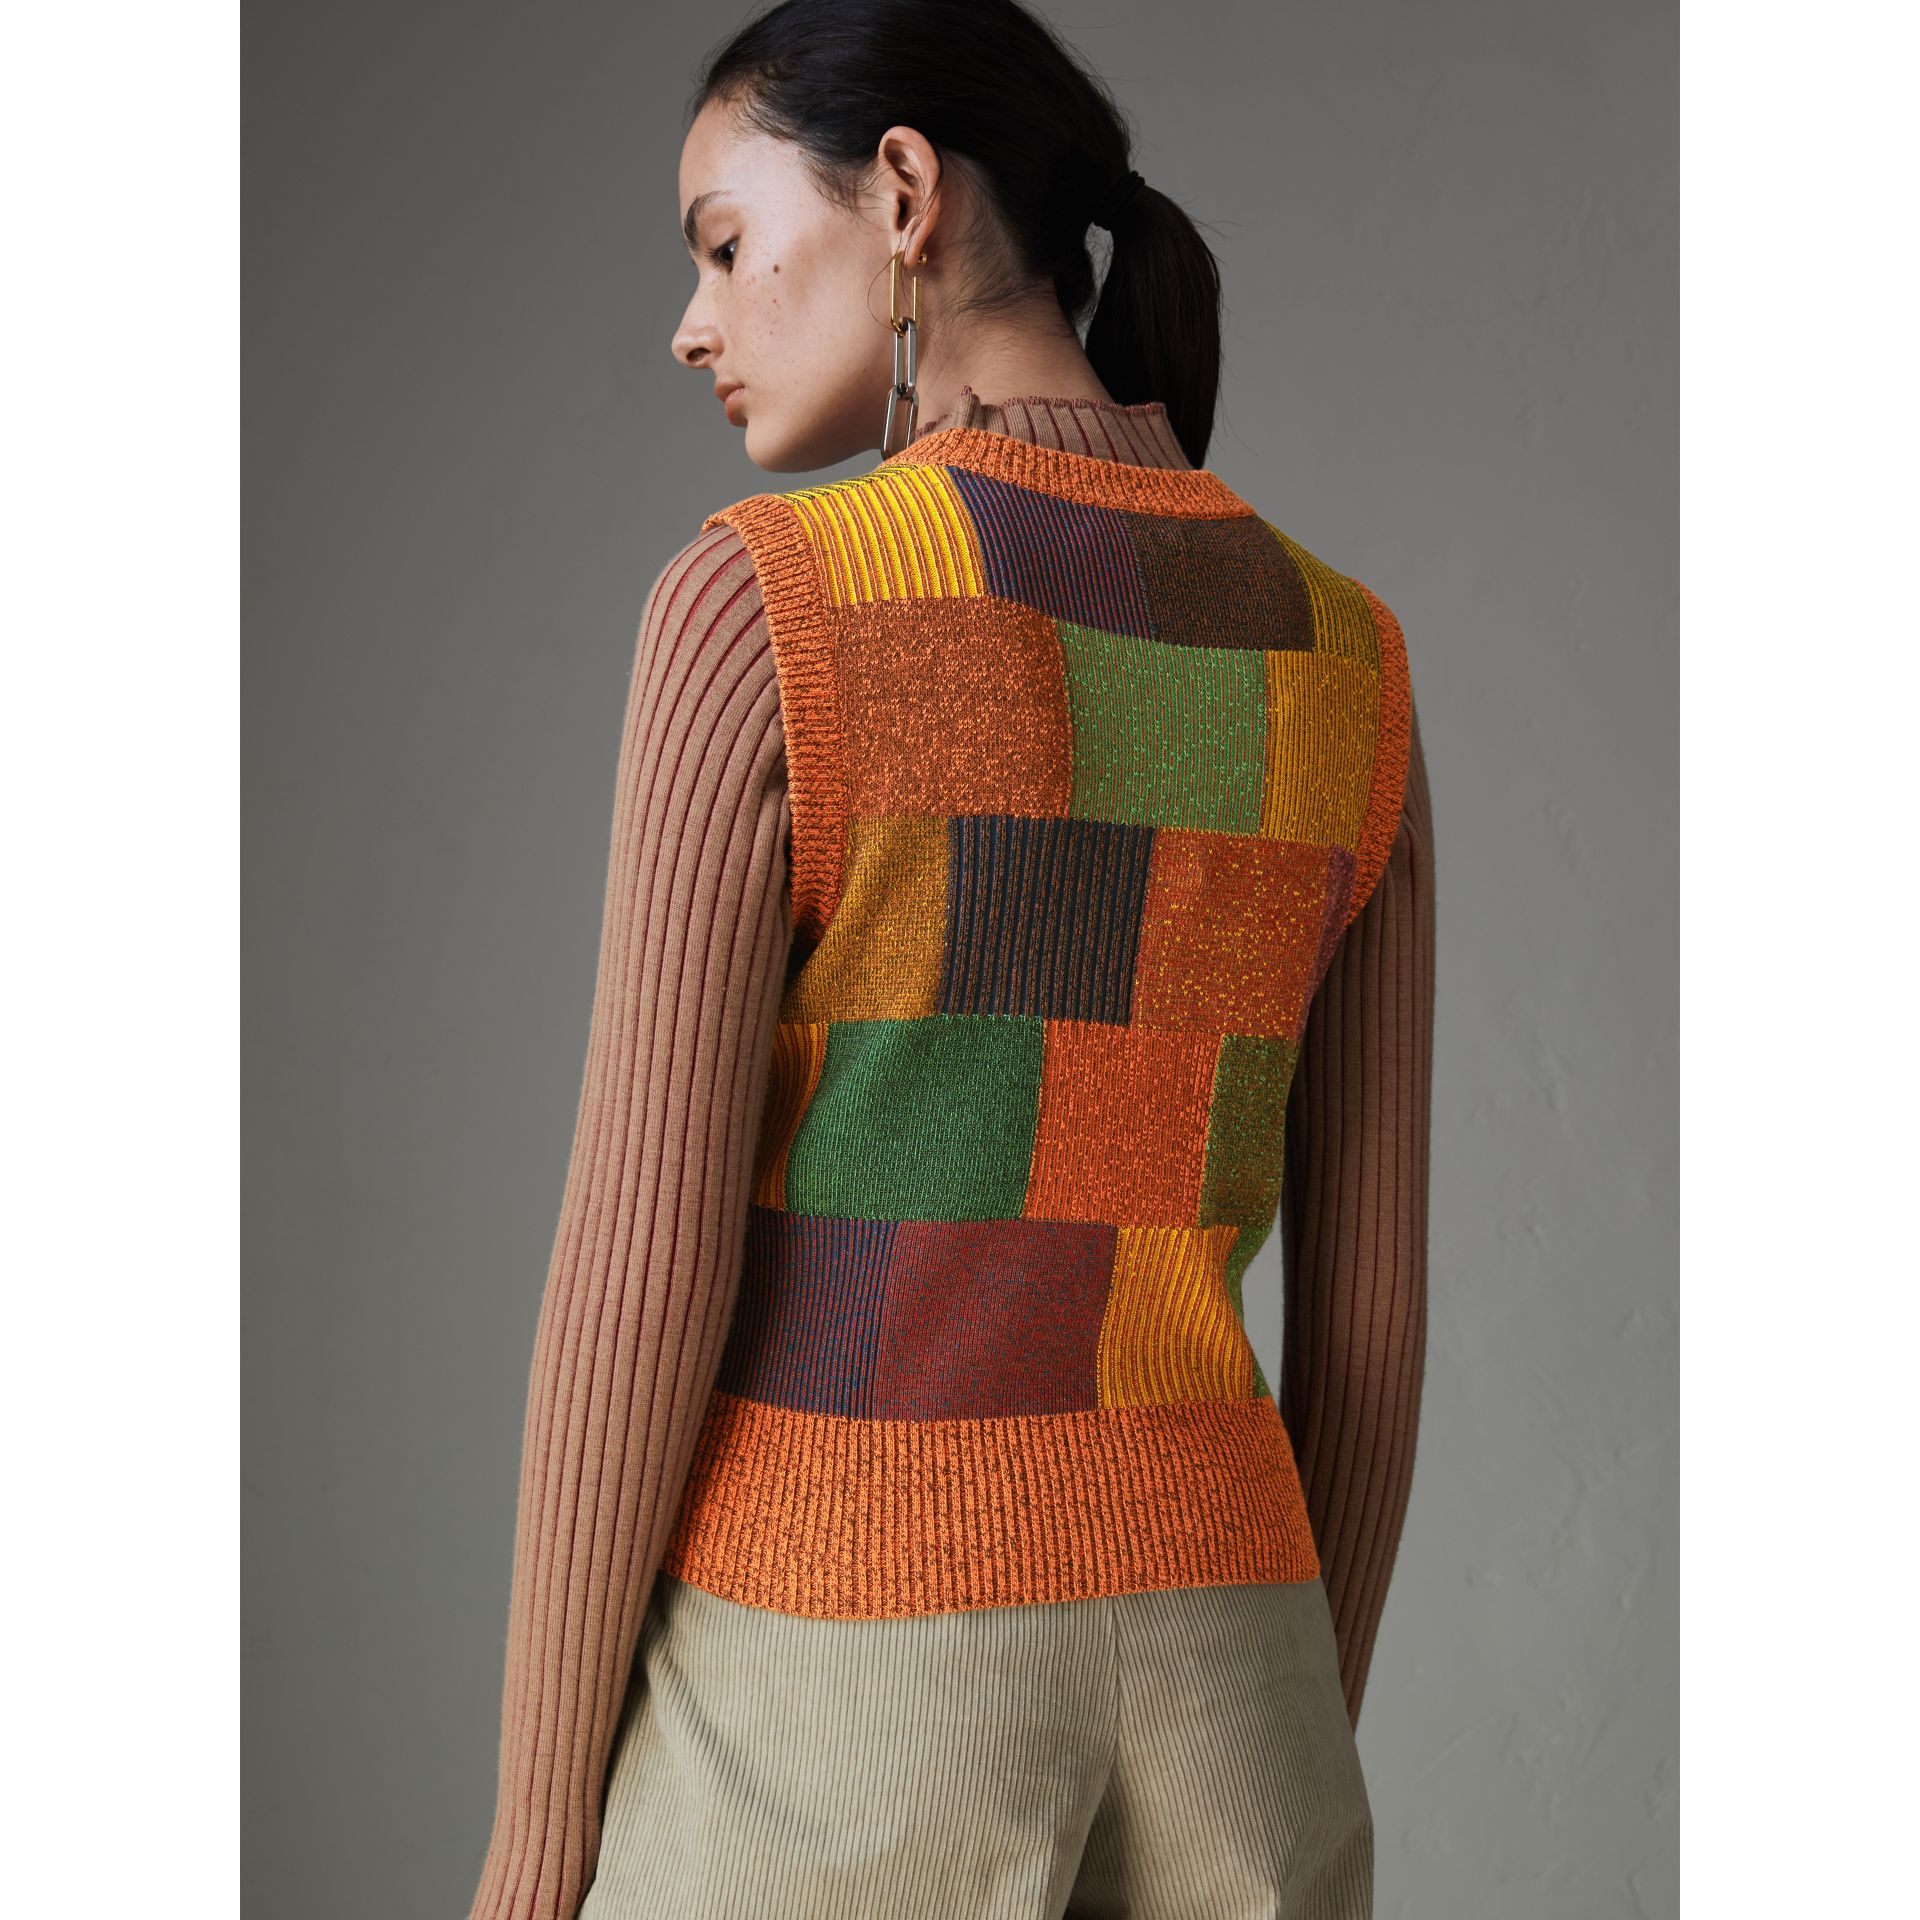 Patchwork Cotton Blend Tank Top in Amber - Women | Burberry Australia - gallery image 2